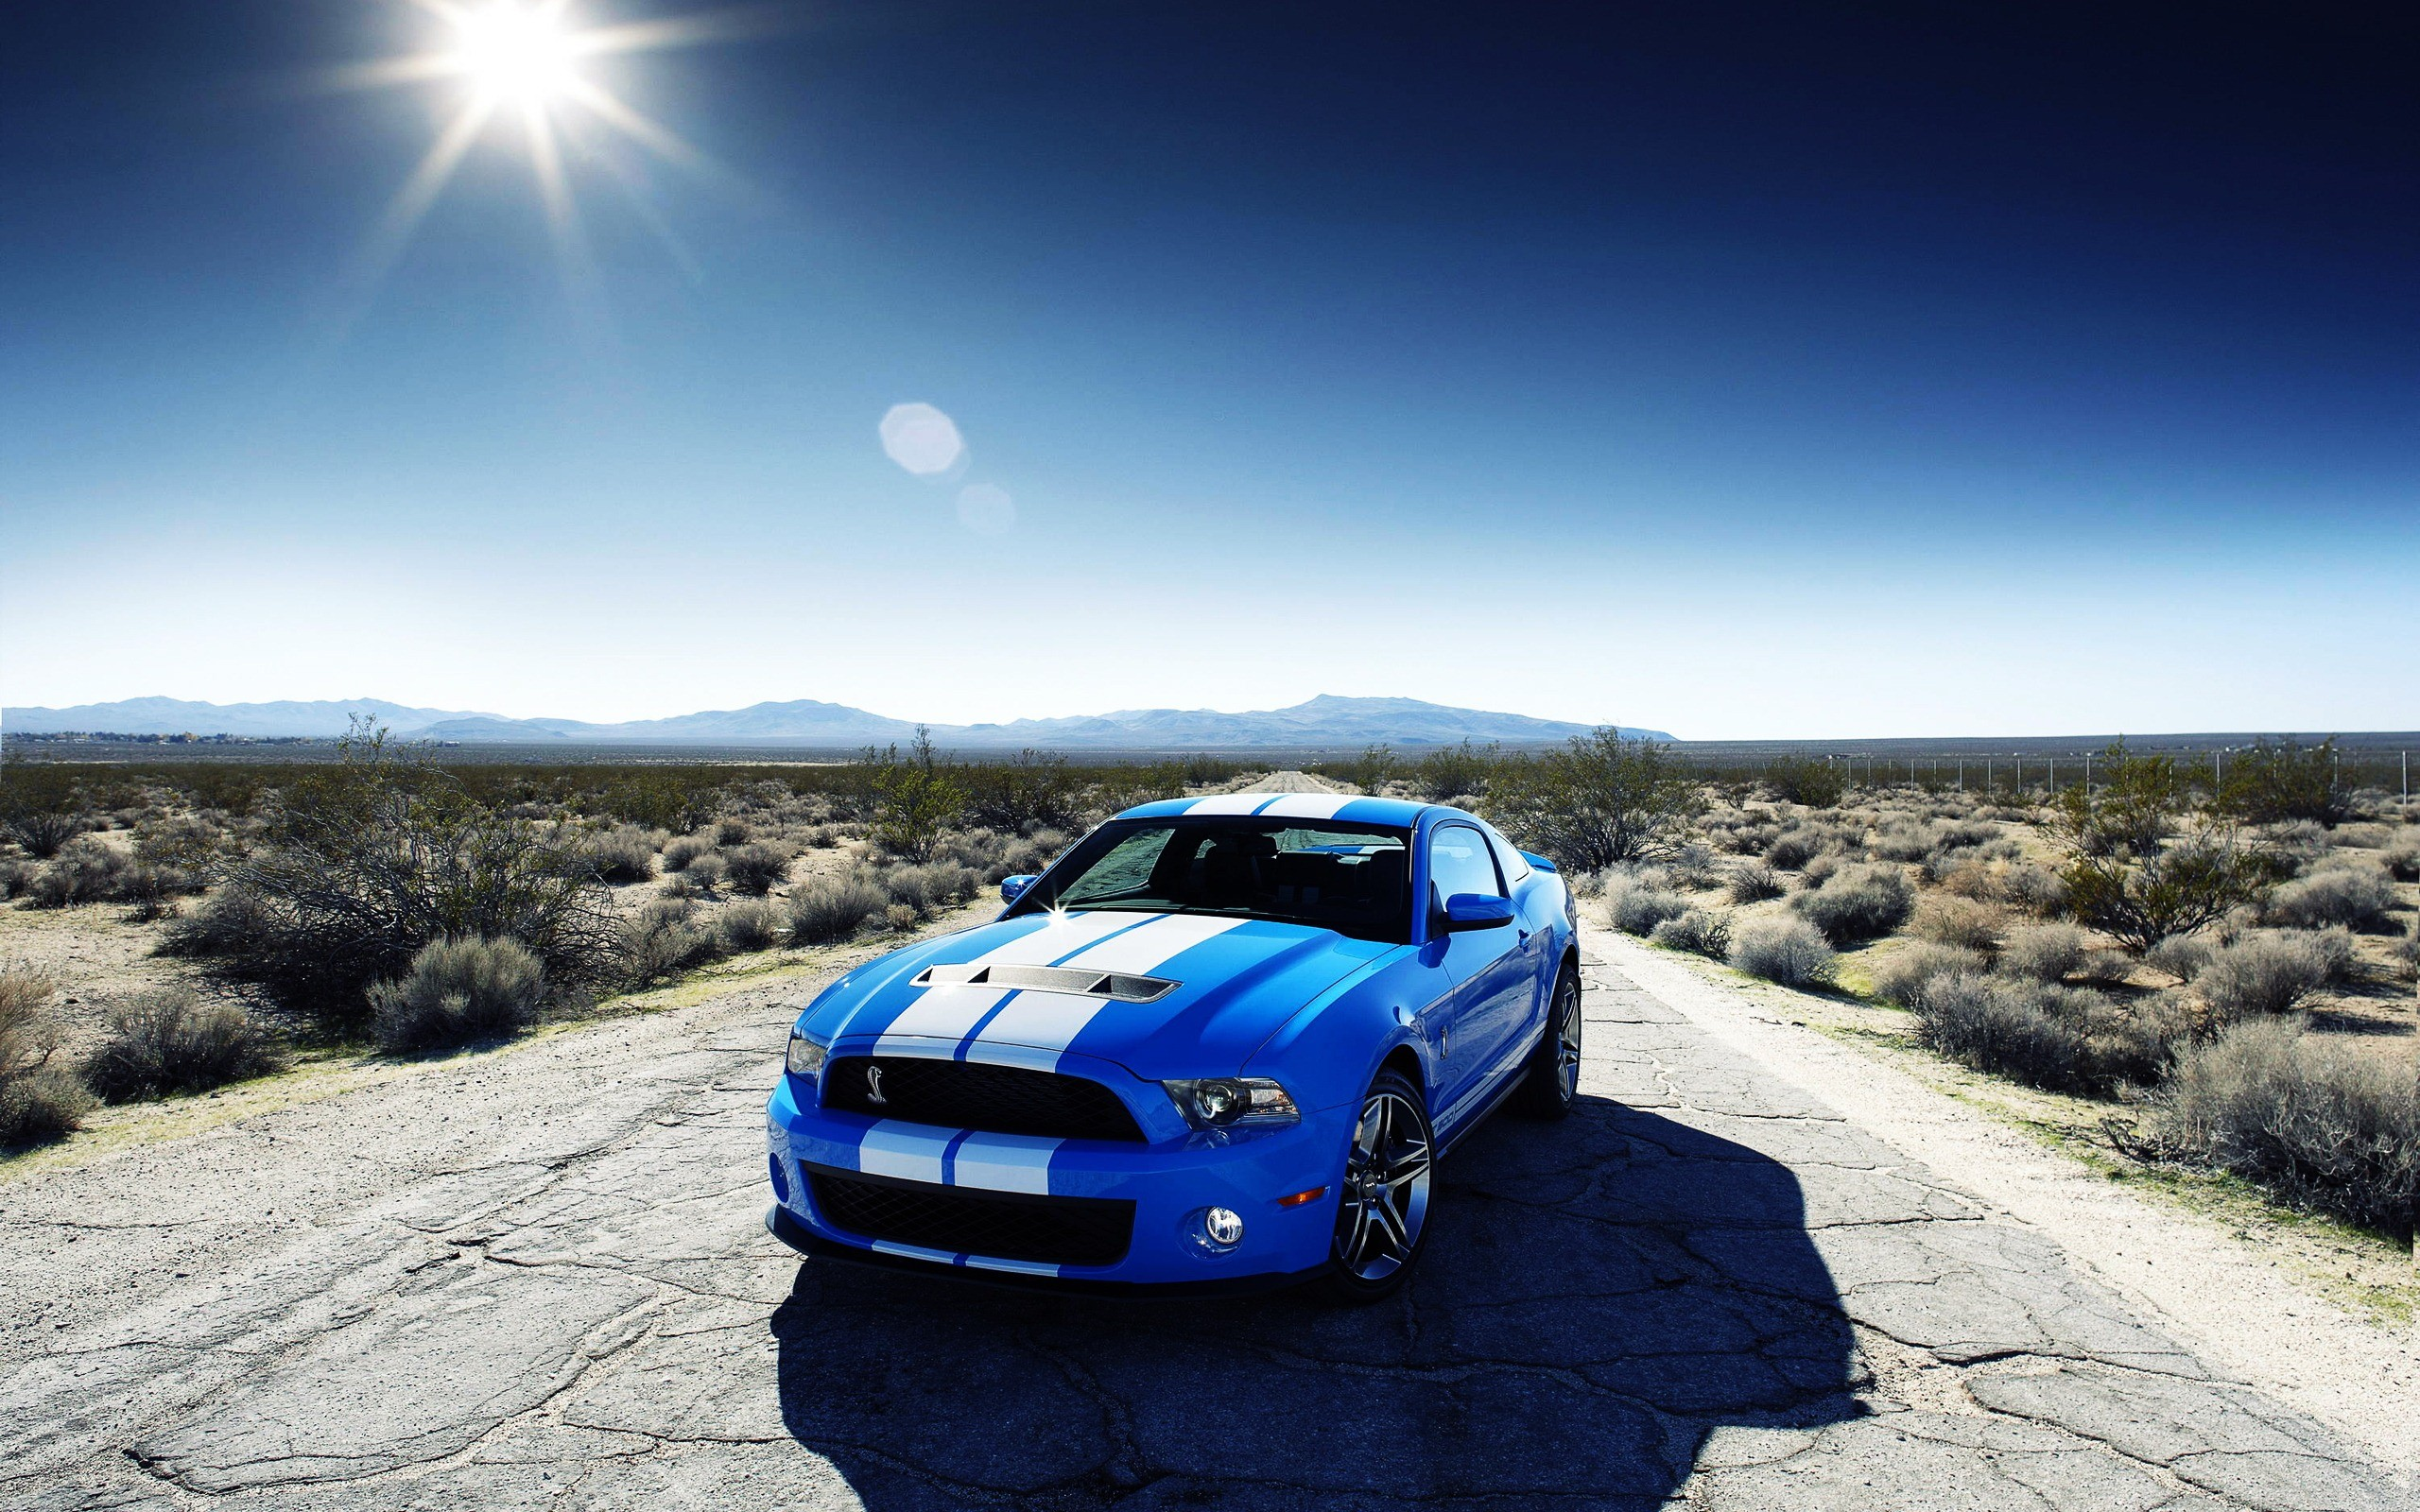 … download ford mustang wallpaper hd 1658 1920×1080 px high …